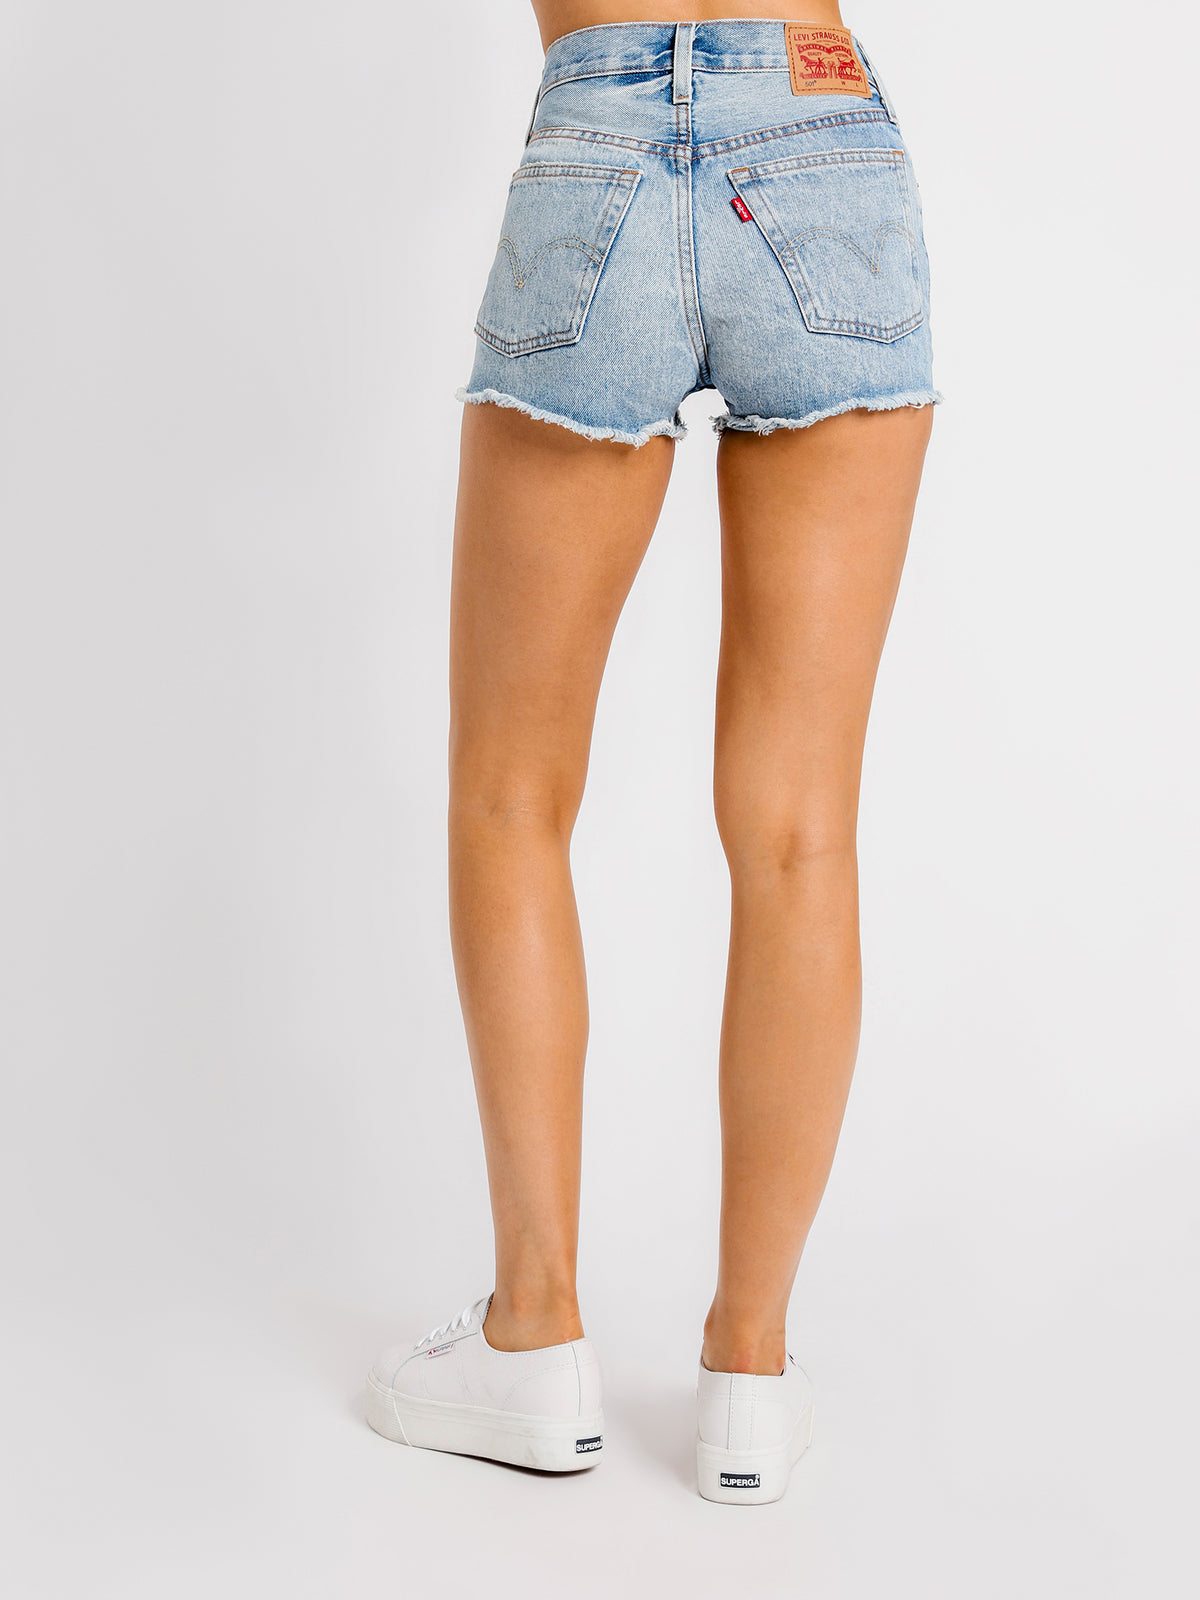 501 High Rise Shorts in Bring to Light Denim